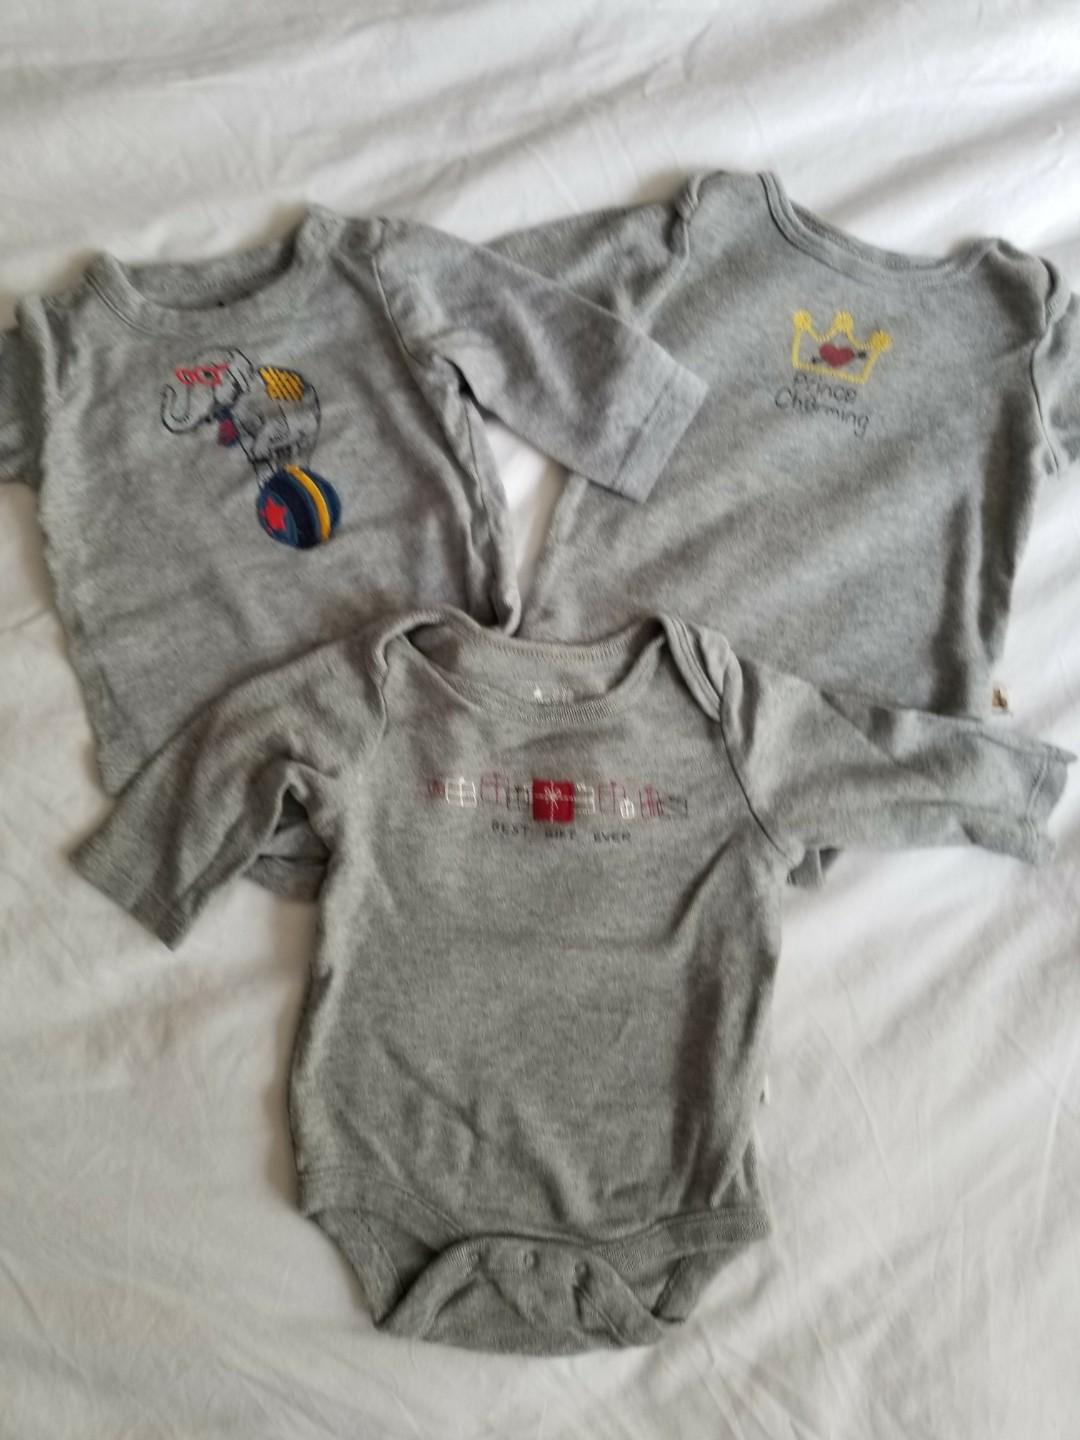 Baby Gap best gift ever long sleeved onesies perfect for fall. New condition. All Sized 0-3 mths. Take all for $11 or $5 each. Purchased new for $39. Porch pick up beaches at main and kingston $11 or yorkville $12.